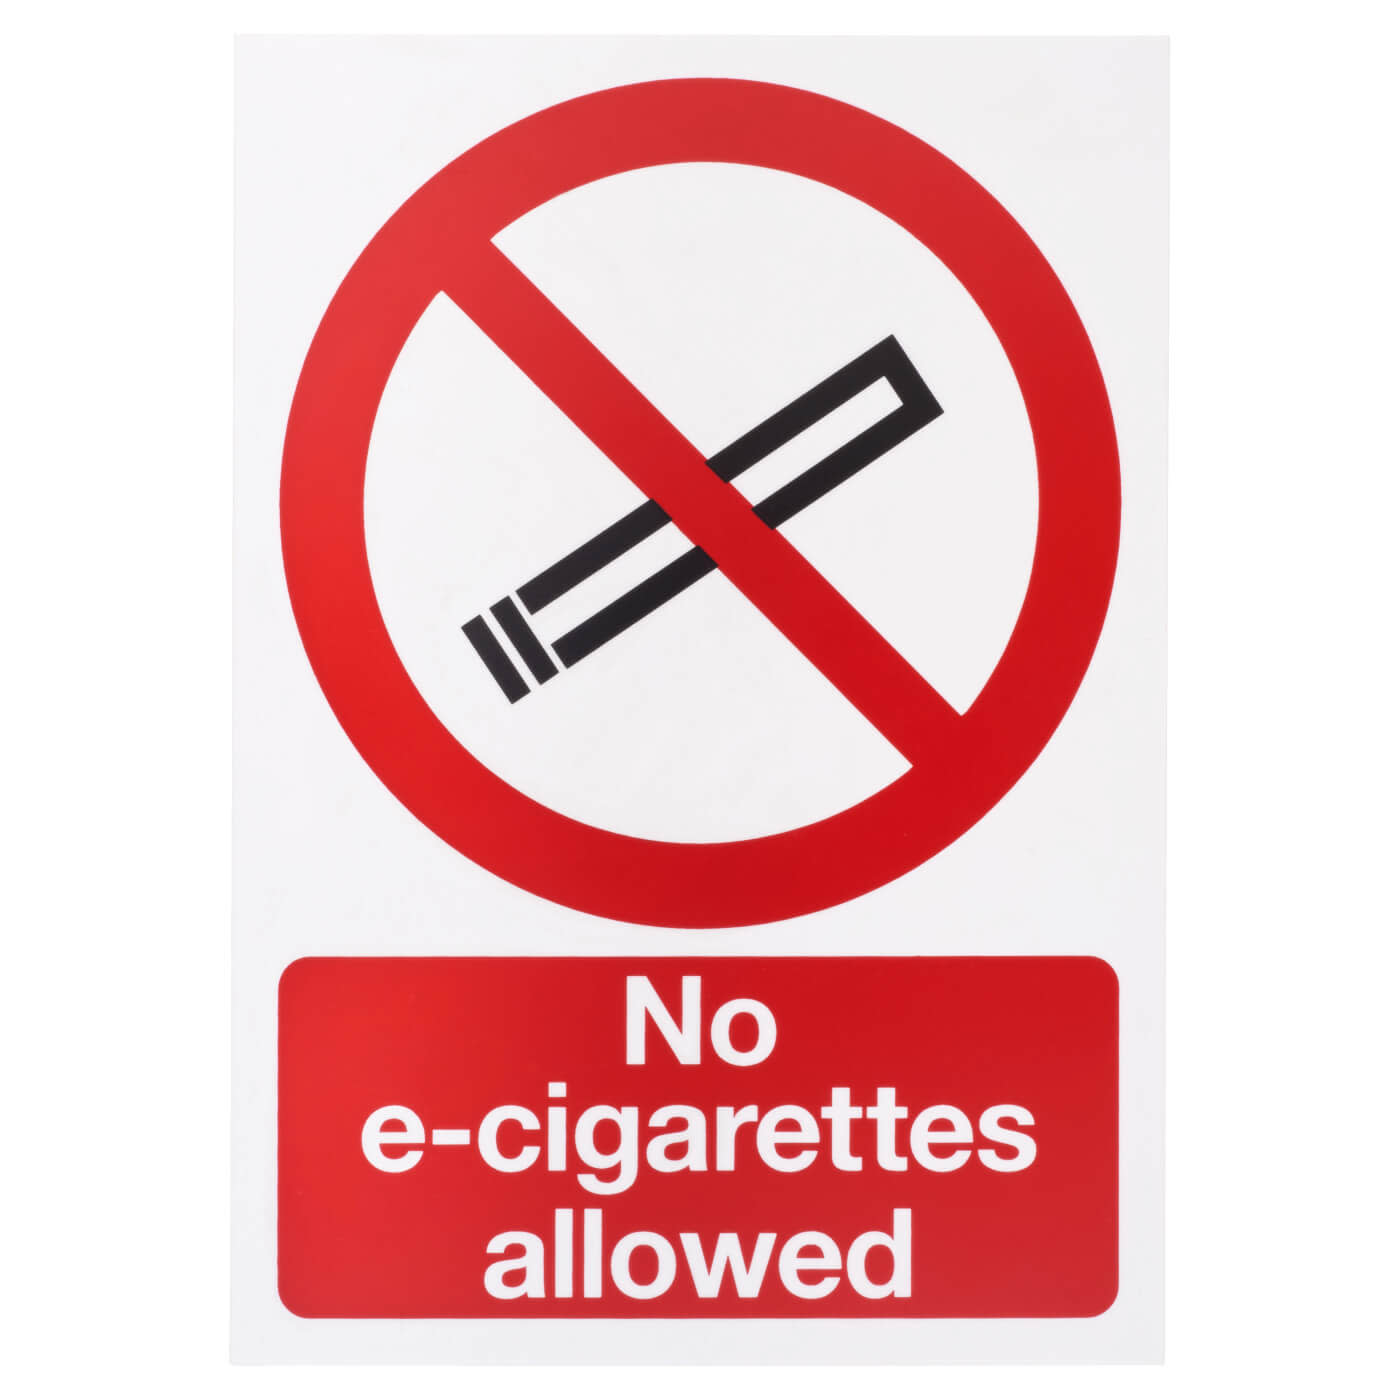 No E-Cigarettes Allowed - 210 x 148mm)